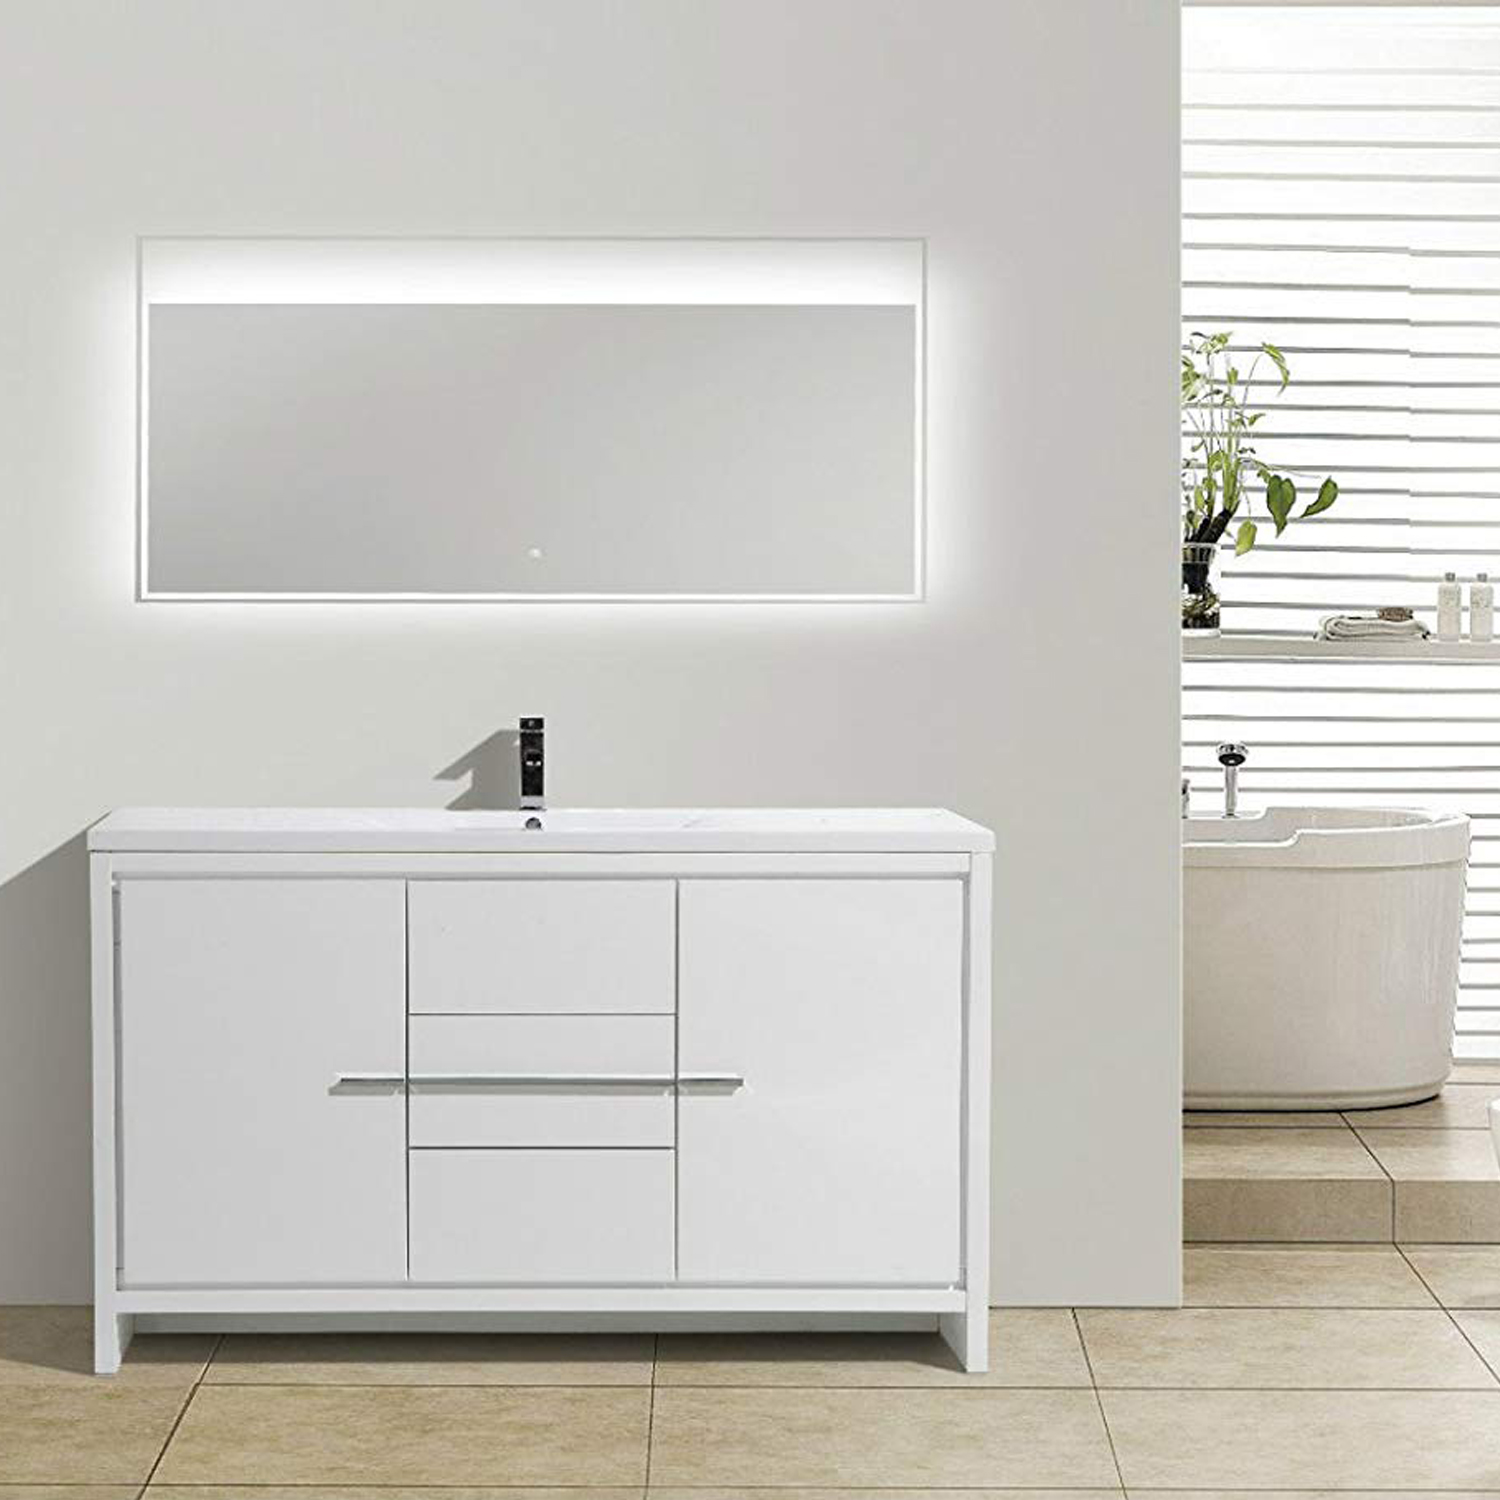 EVVN765 60WH SS A Main - Eviva Grace 60 in. White Bathroom Vanity with Single White Integrated Acrylic Countertop